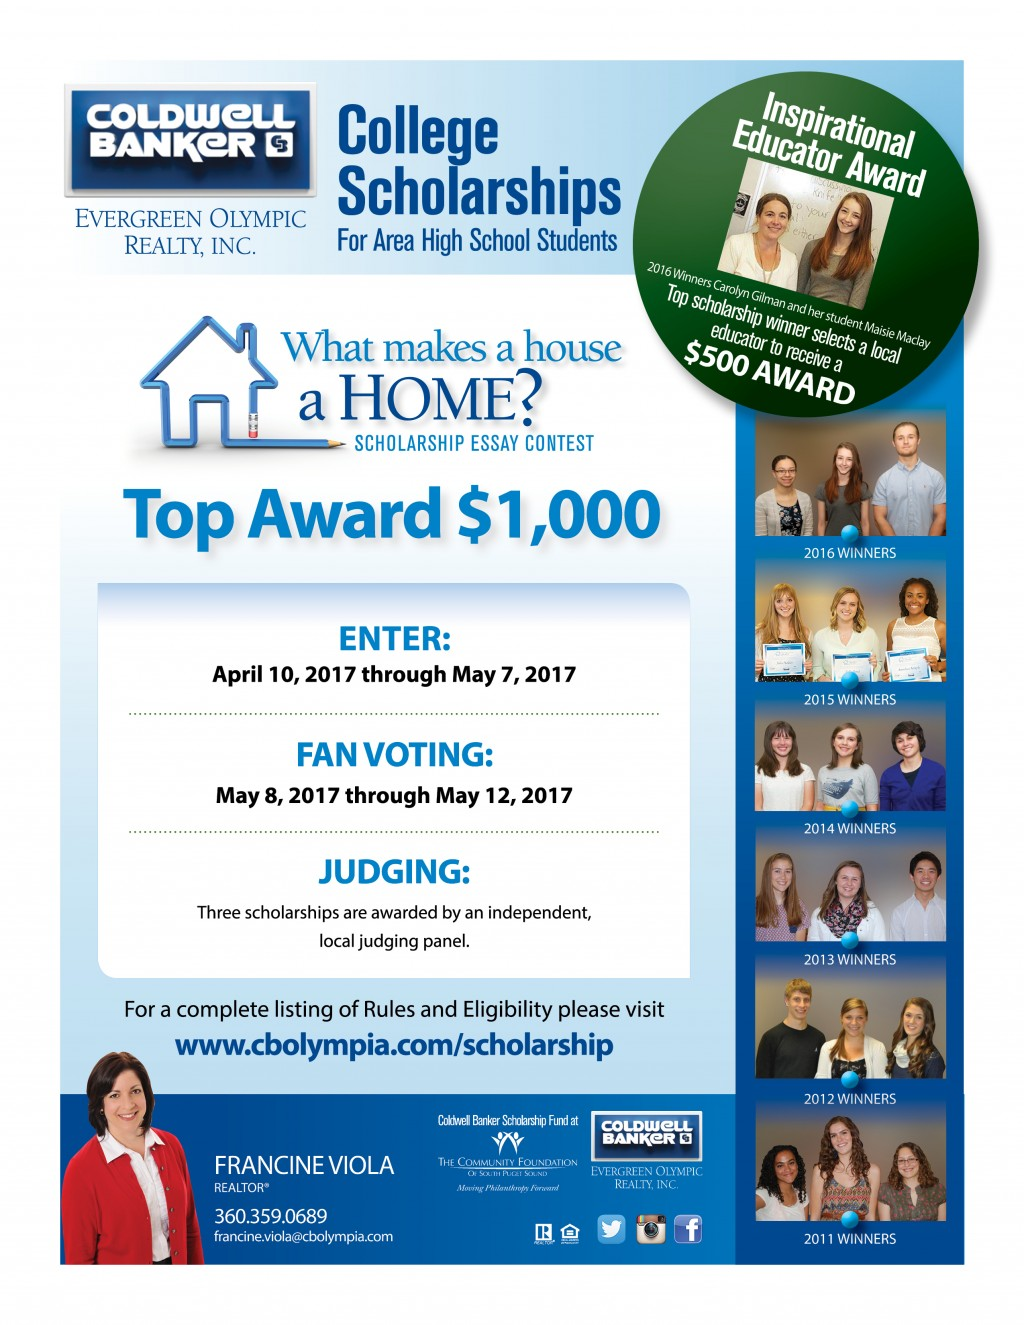 006 Francineviola Scholarship2017 Flyer Scholarship Essay Contest Astounding Contests For High School Students 2019 Middle Large